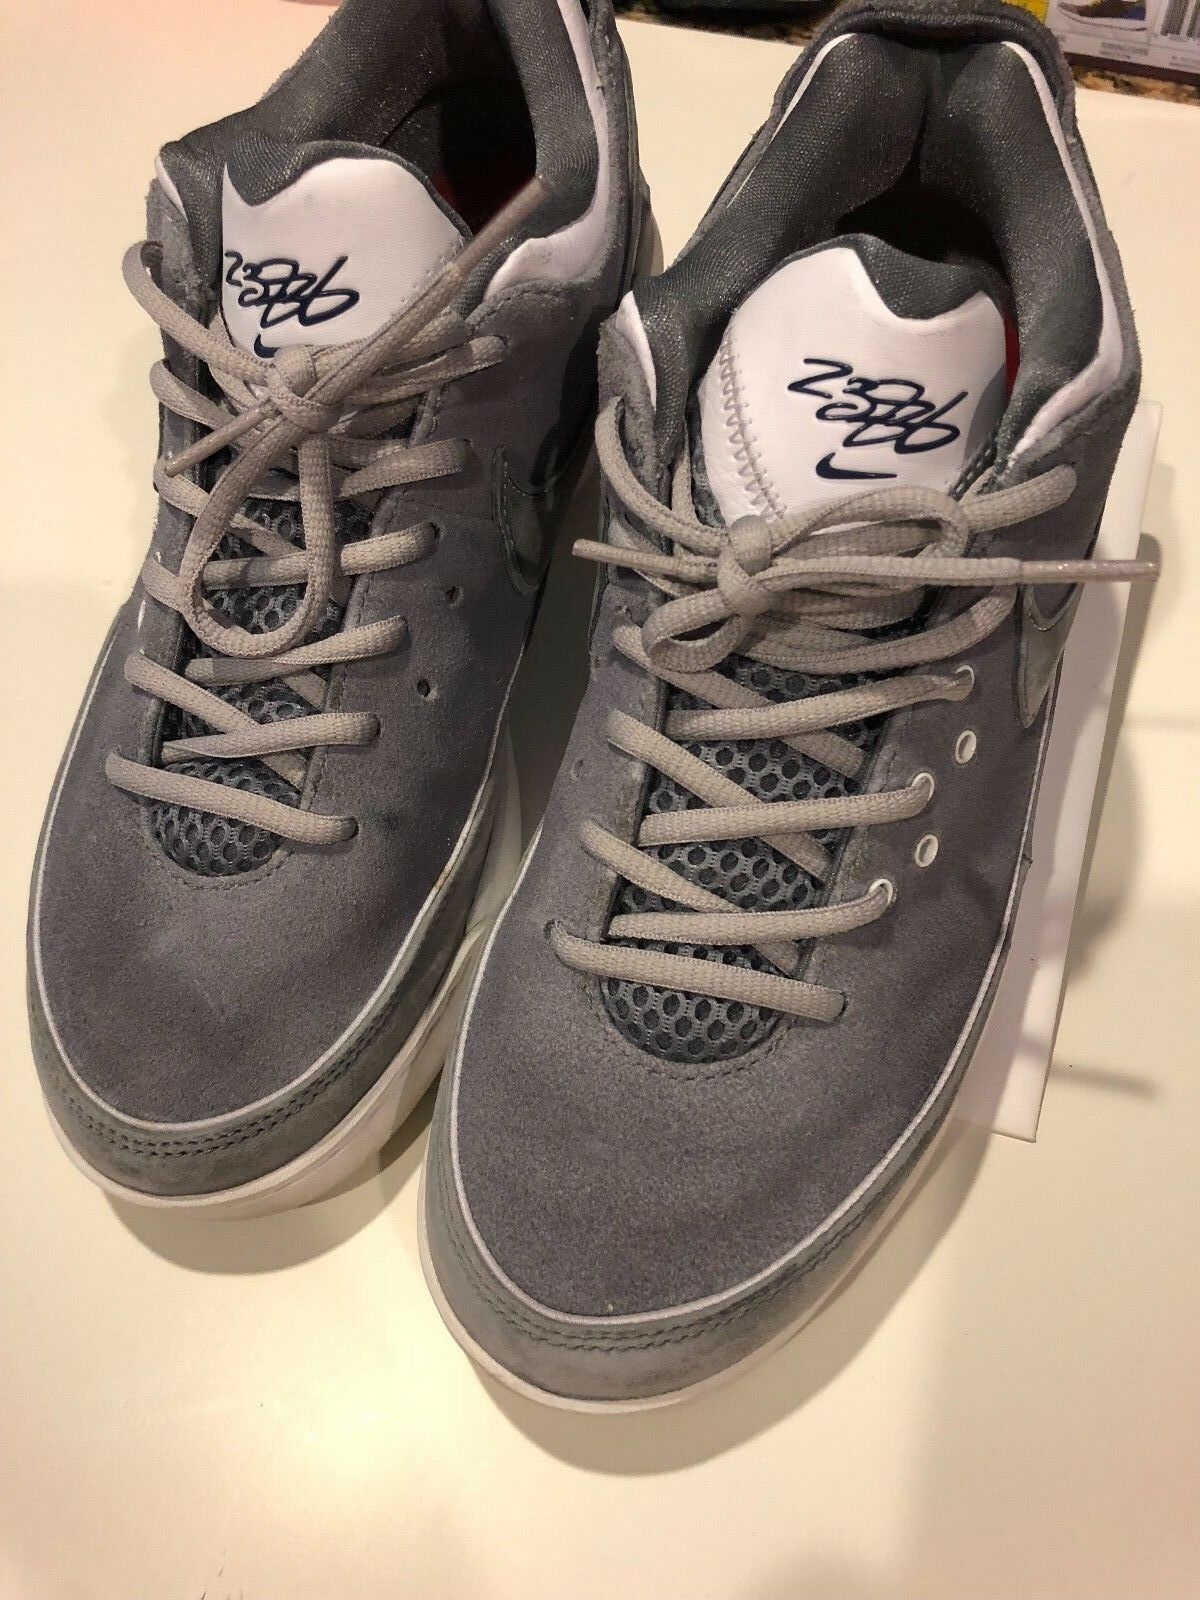 LeBron James Nike 7 low Gray Suede Shoes, Size 8.5